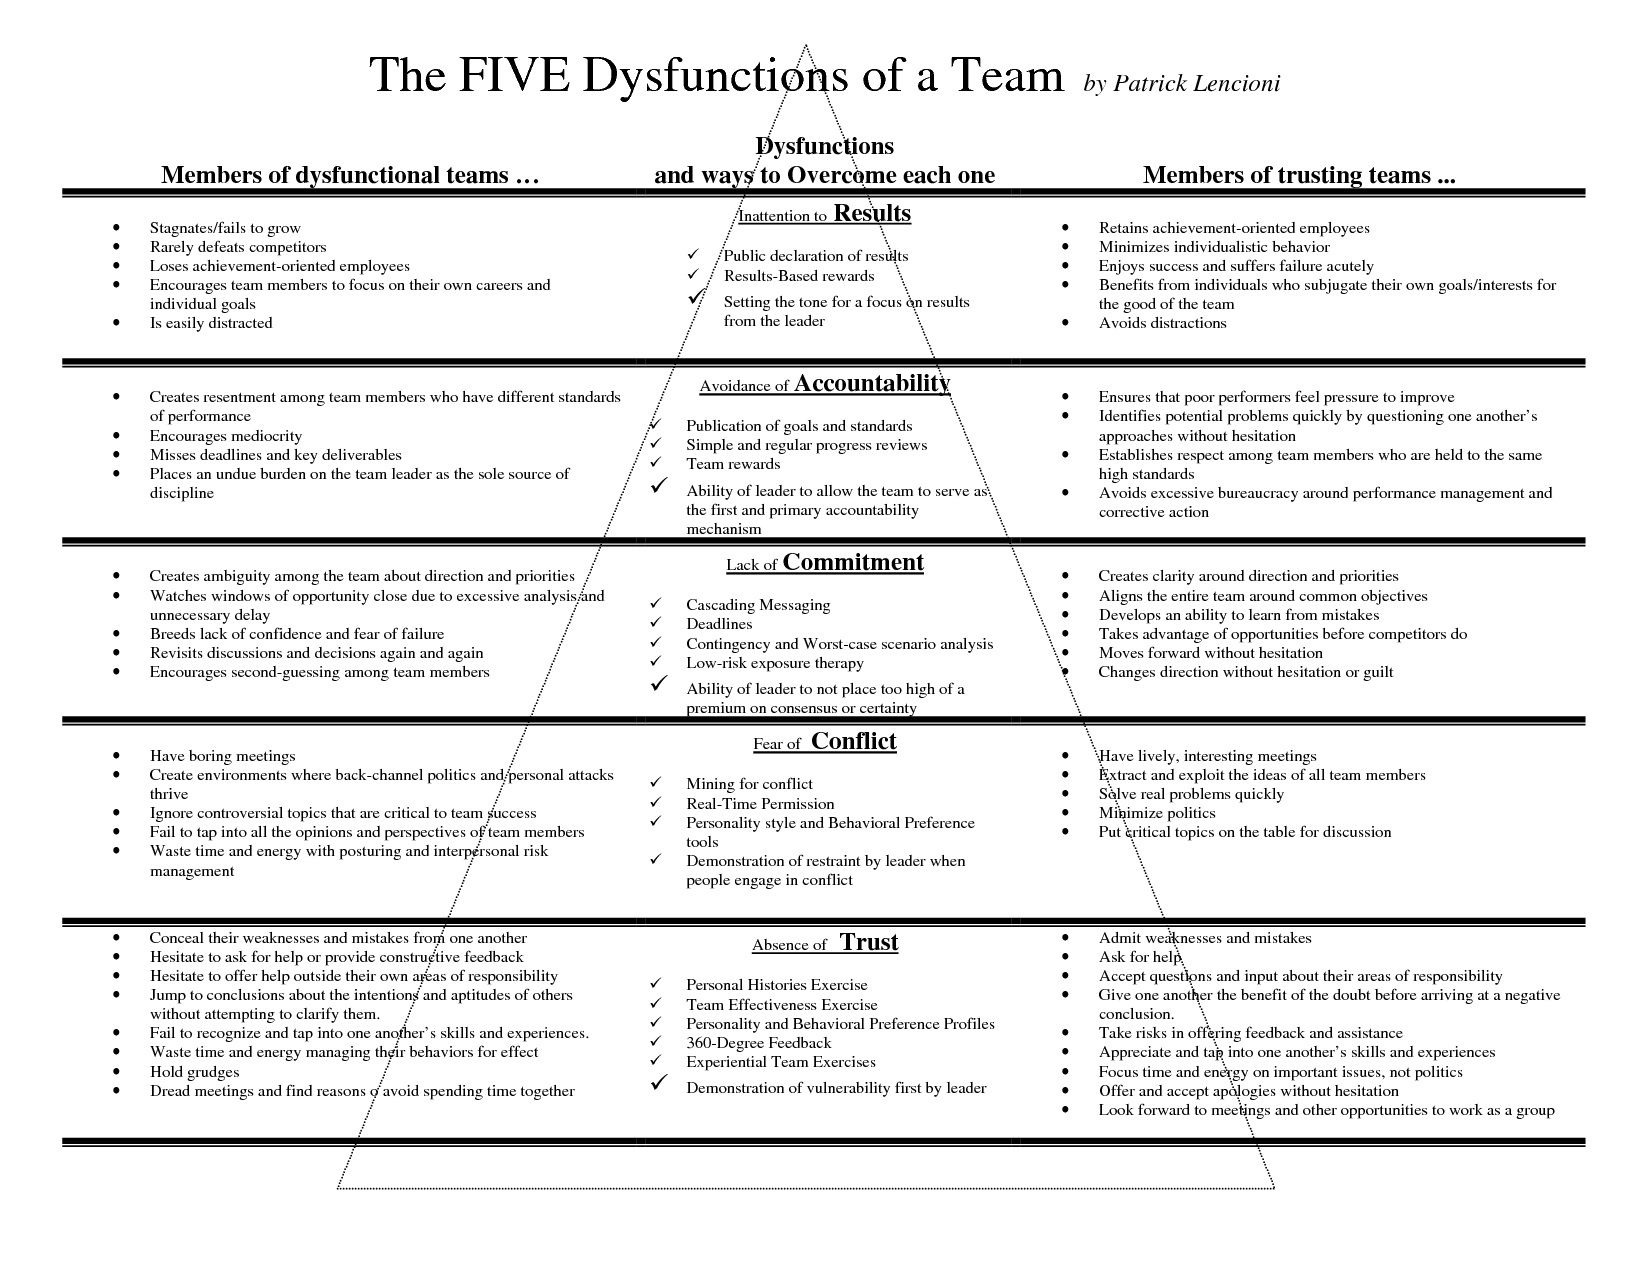 The Five Dysfunctions Of A Team By Patrick Lencioni Perfct Tool To Be Used During Periodic Review Meetings To Create Unity And Increase Productivity